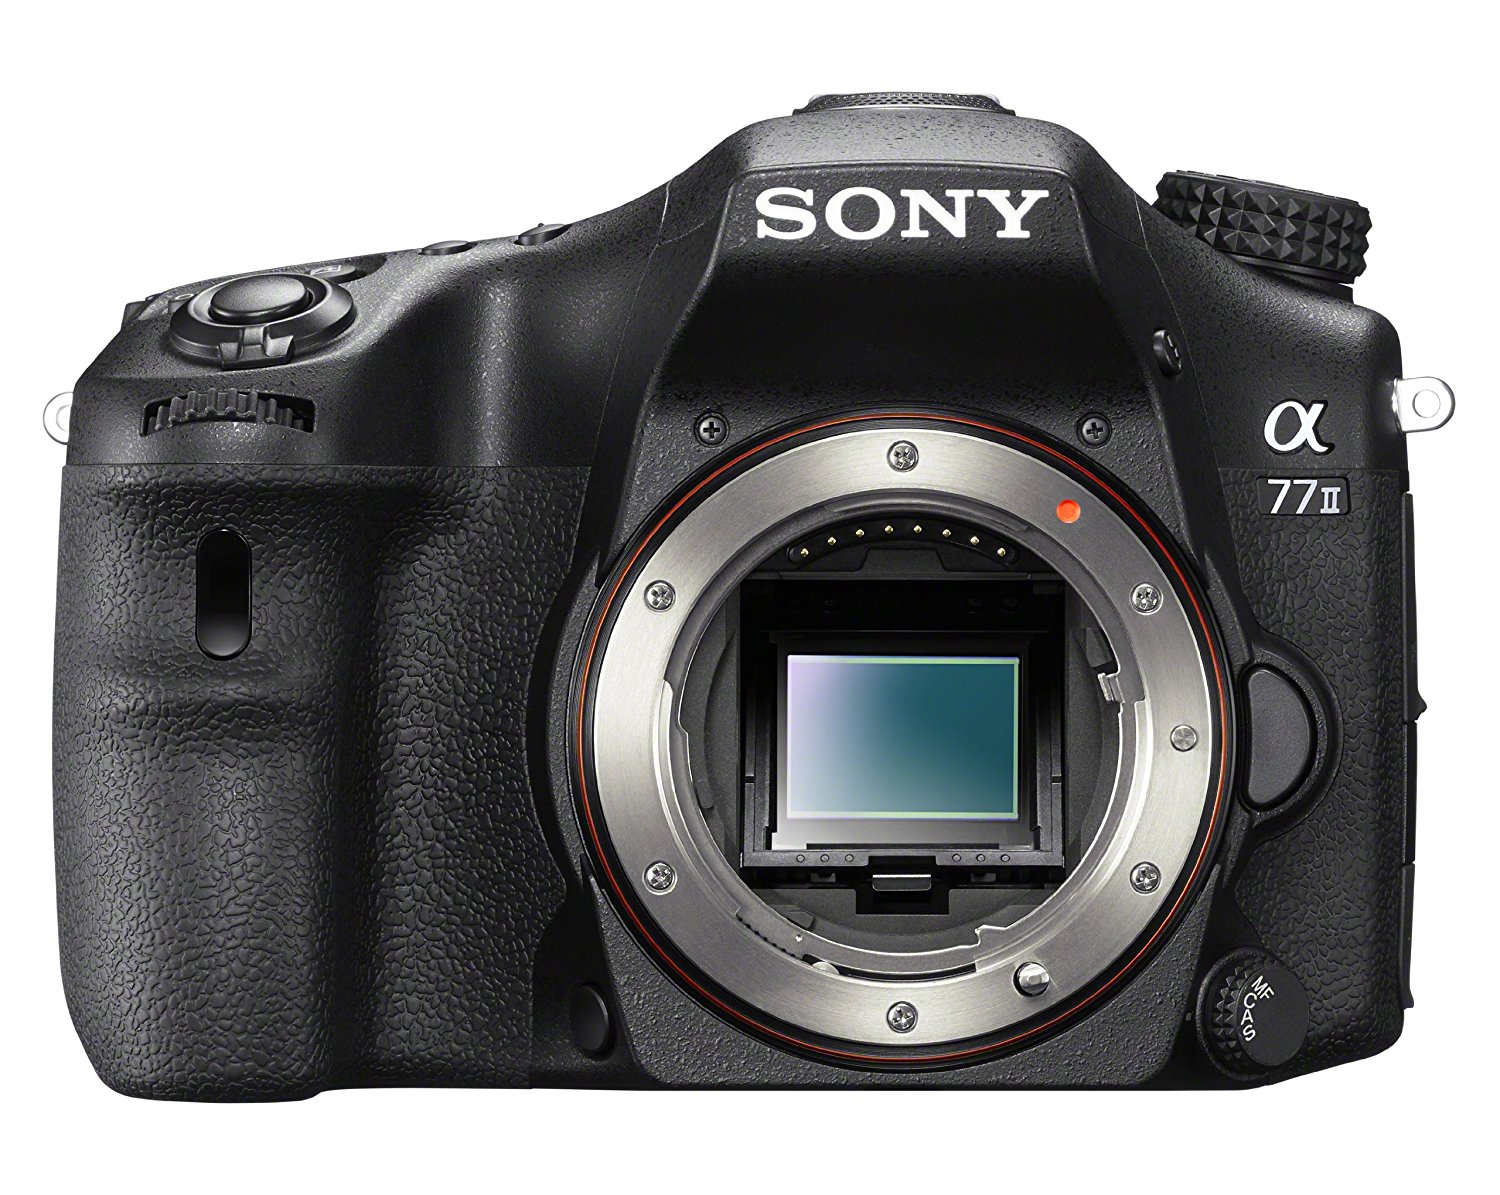 Sony A77II Digital SLR Camera